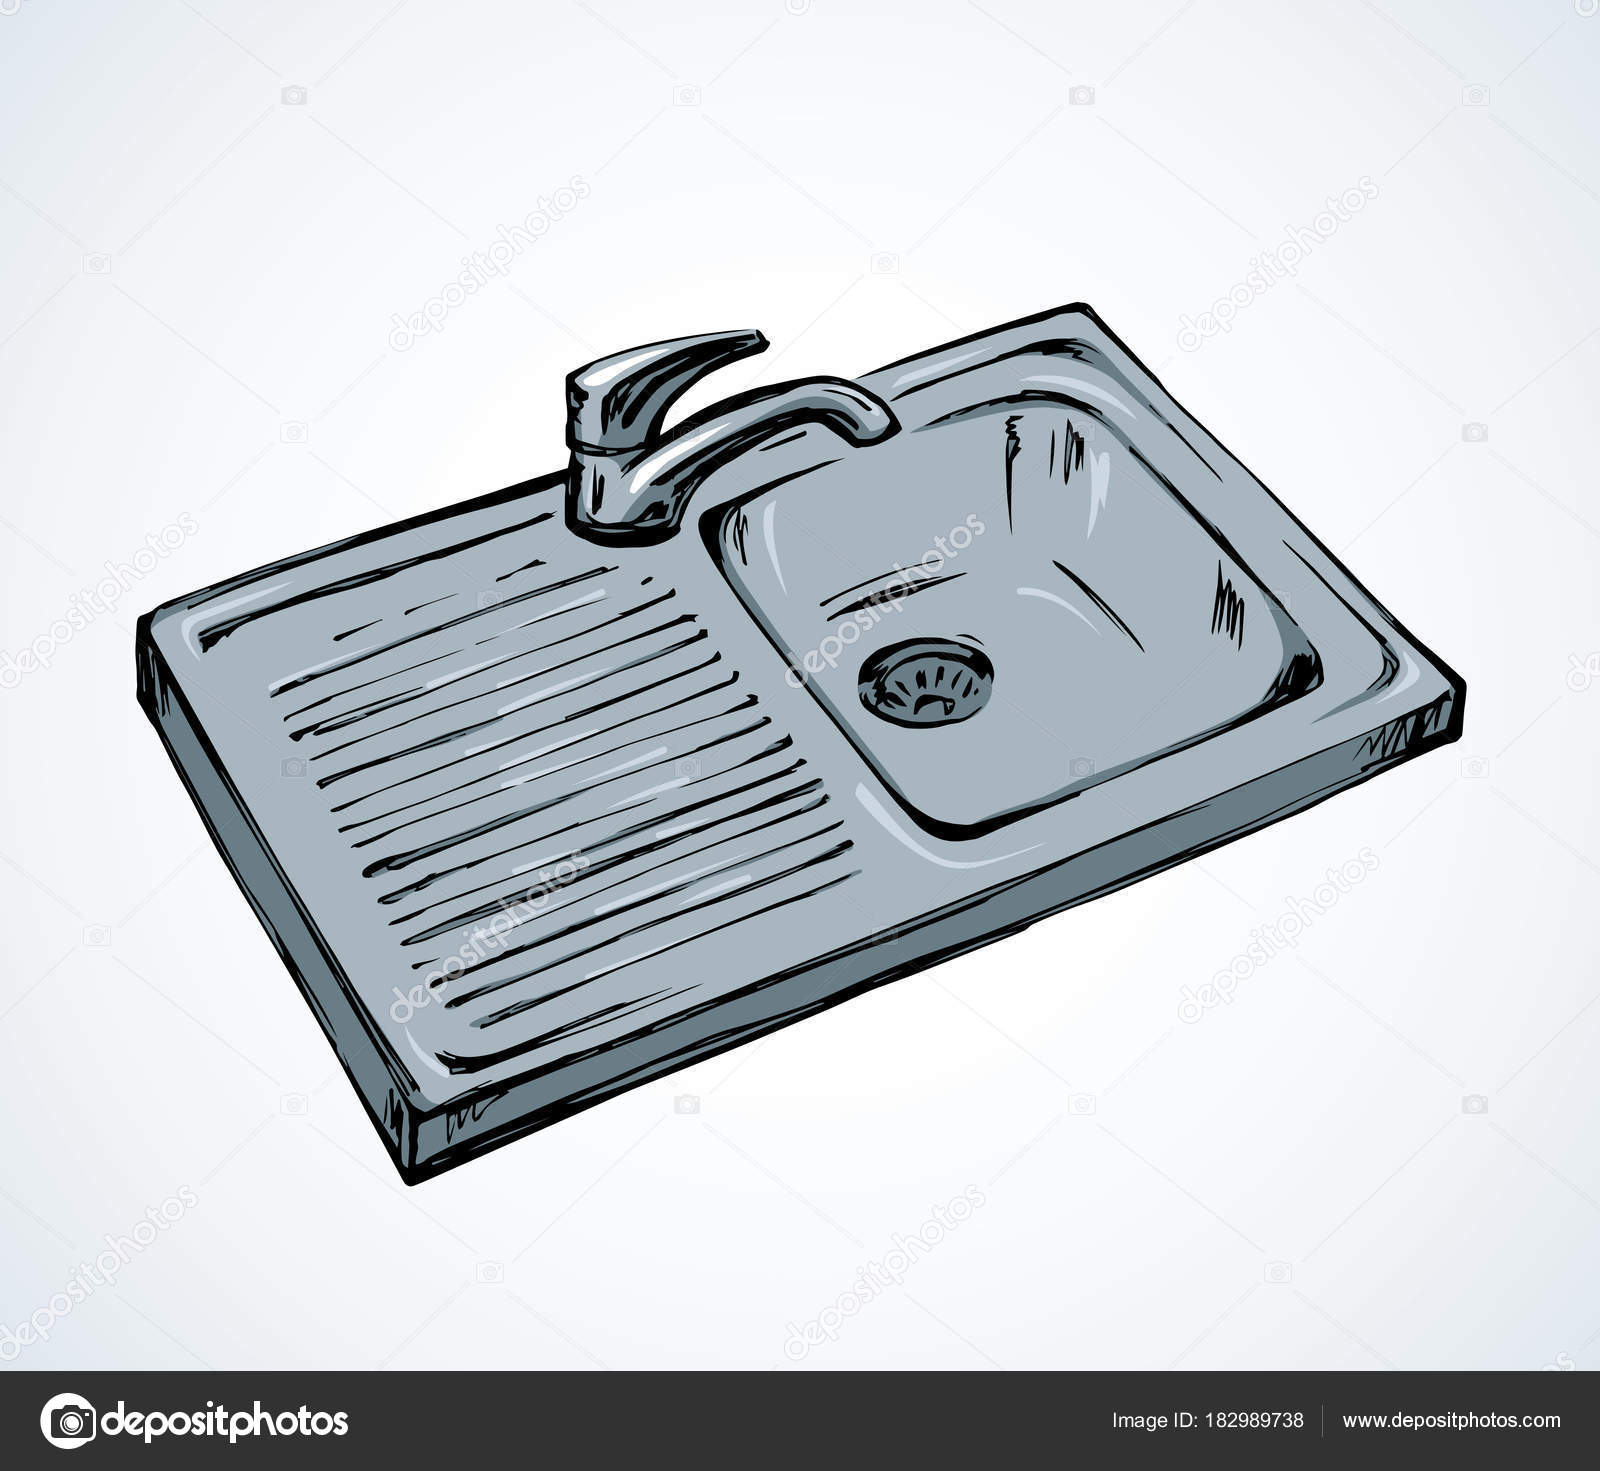 Kitchen Sink Drawing at GetDrawings.com | Free for personal use ...